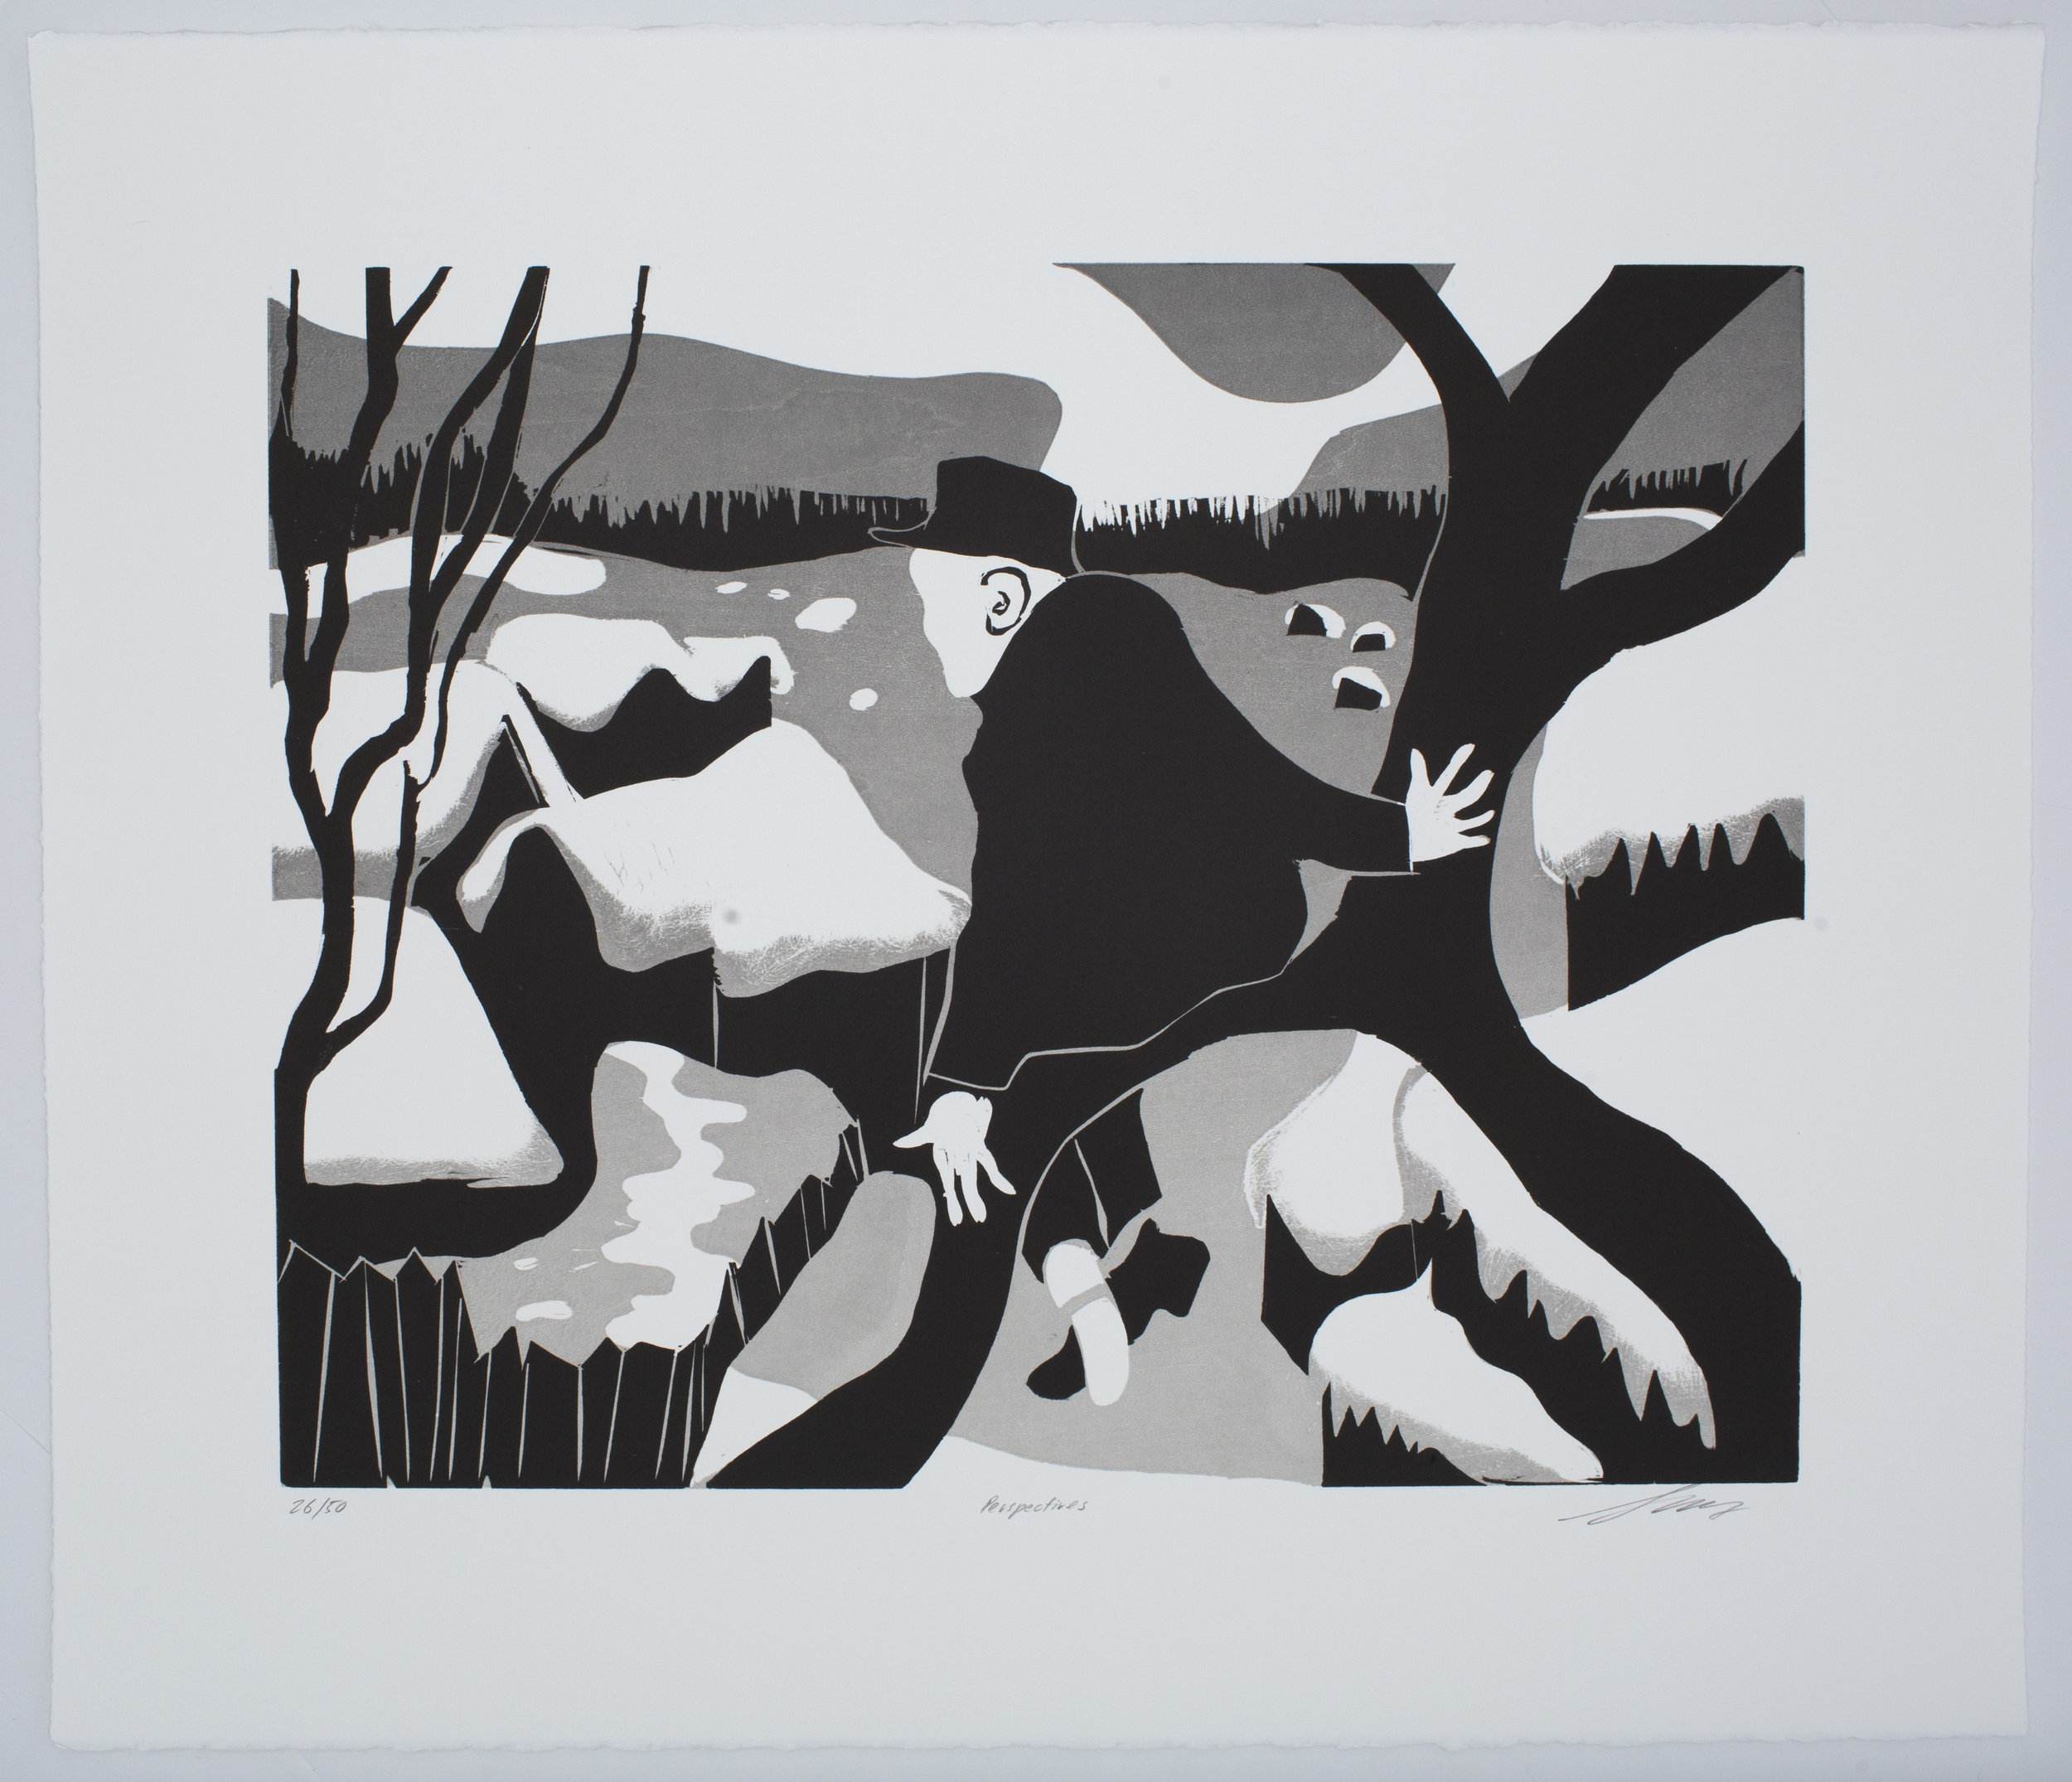 Perspectives , 2016 Woodcut Image Size: 24 x 18 inches Paper Size: 30 x 22 inches Edition of 50